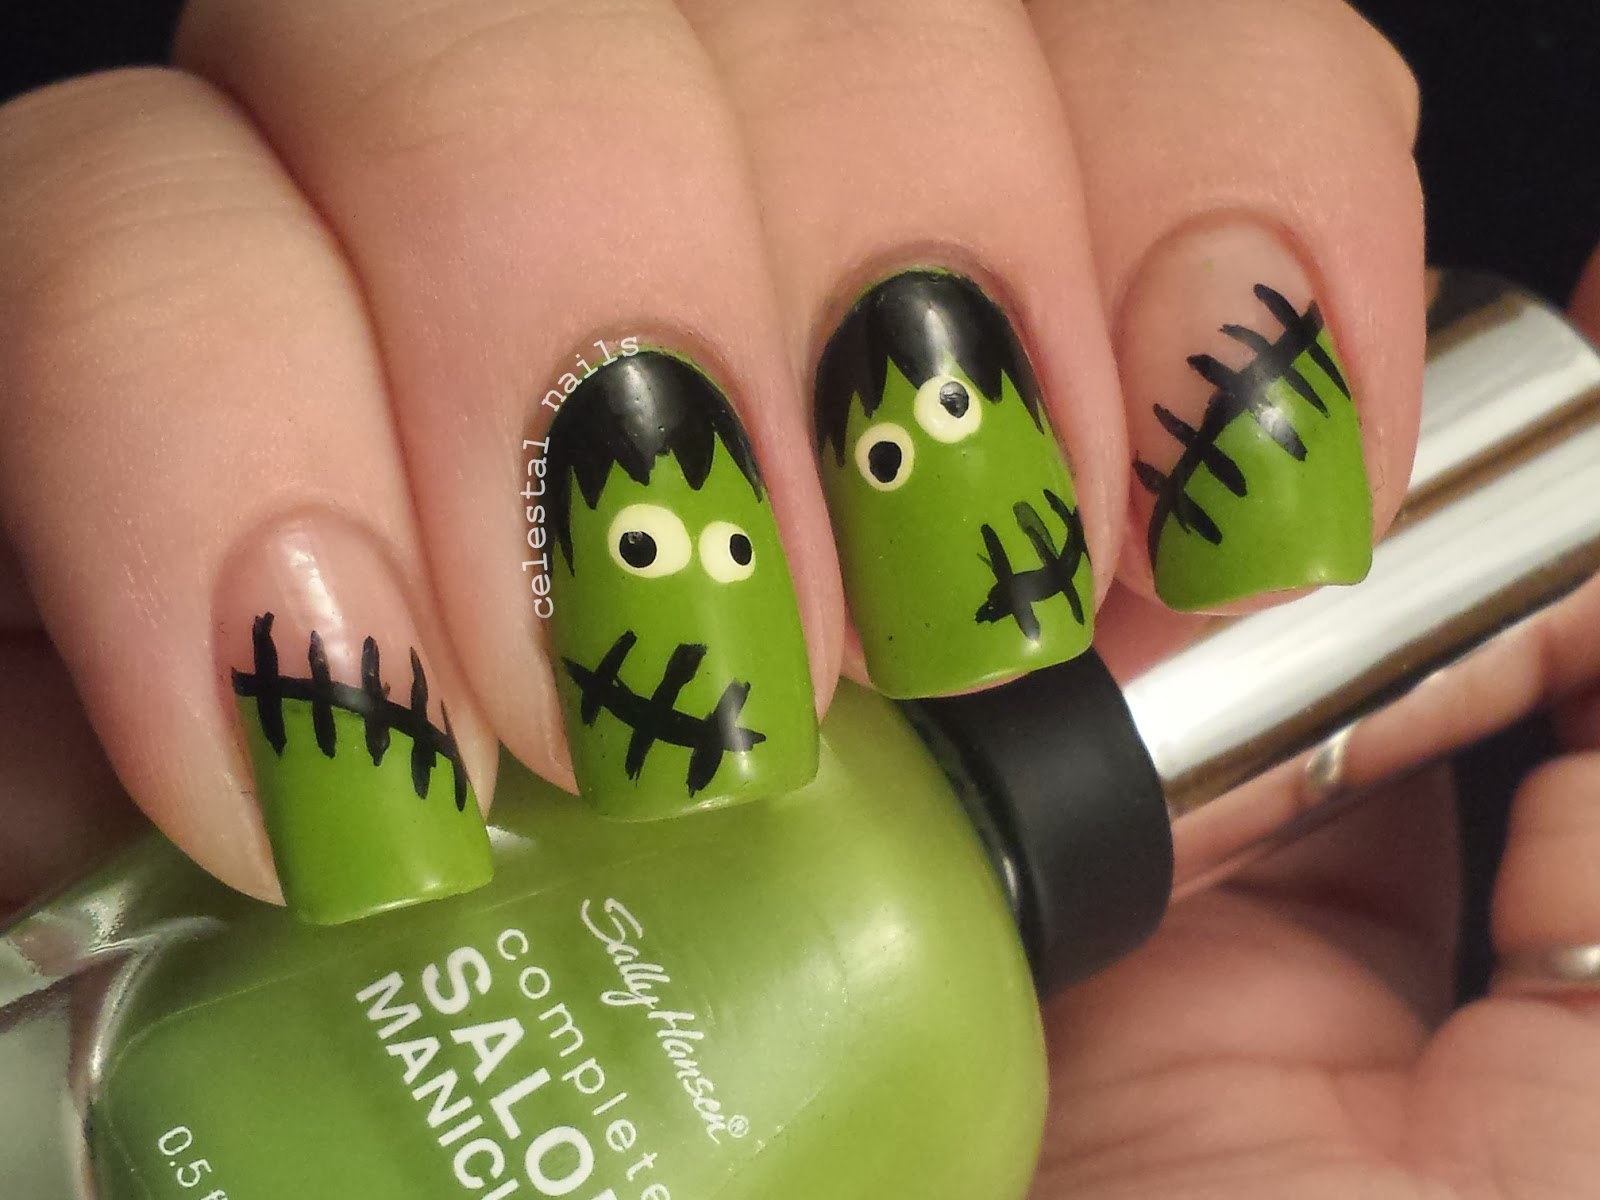 Frankenstein nail art celestal nails frankenstein nail art prinsesfo Gallery